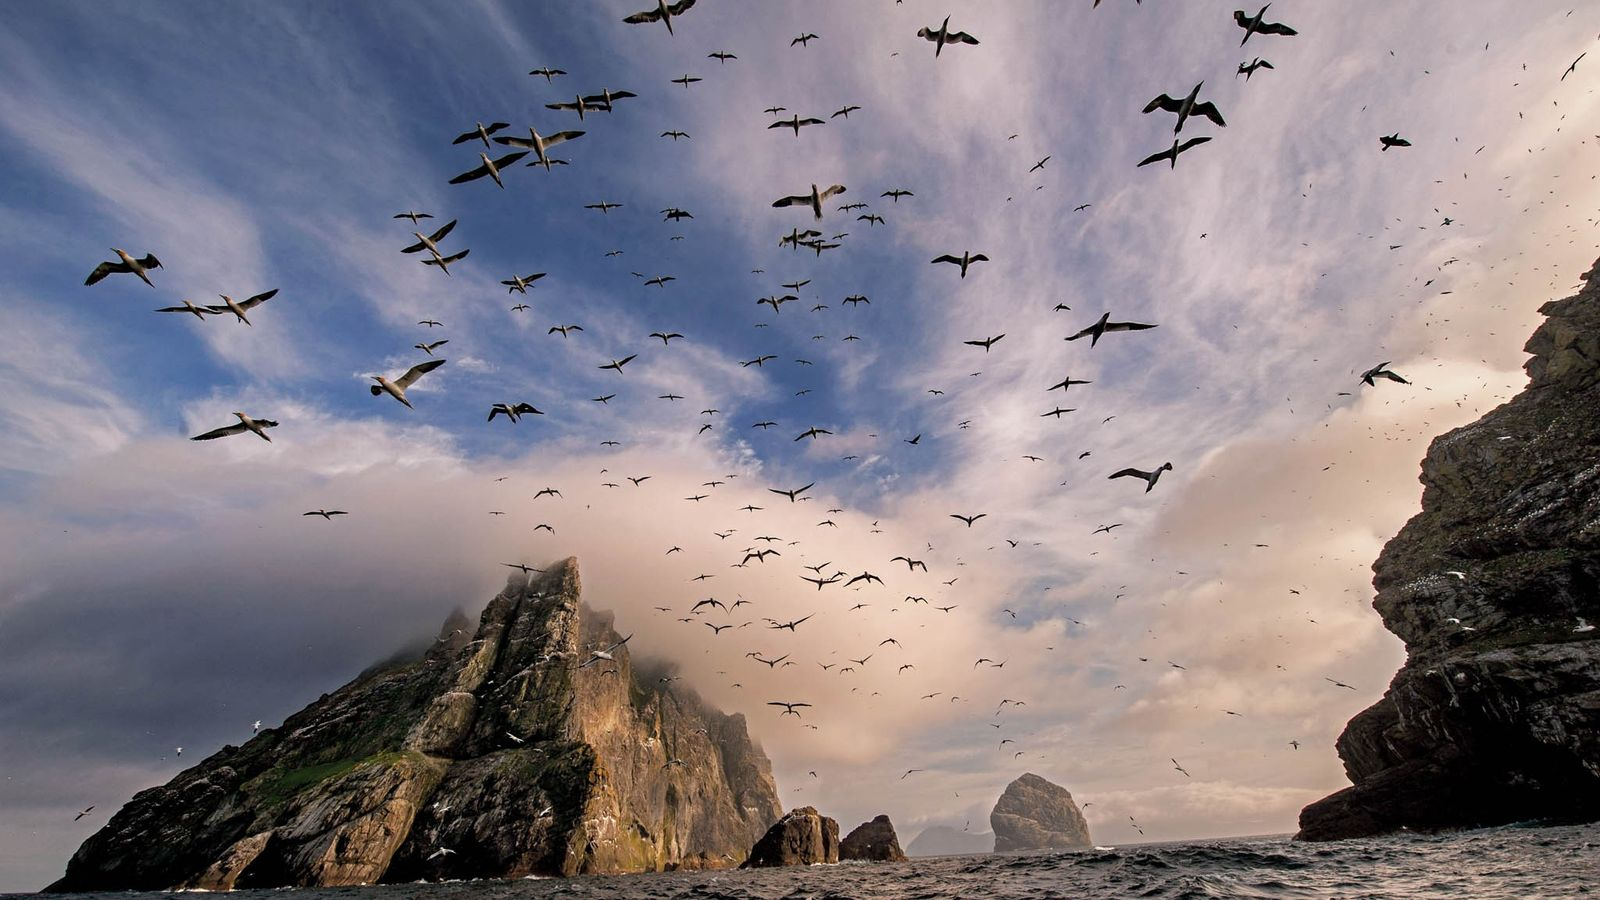 Scotland is wildest around islands such as cloud-wreathed Boreray, part of the St. Kilda archipelago, where ...